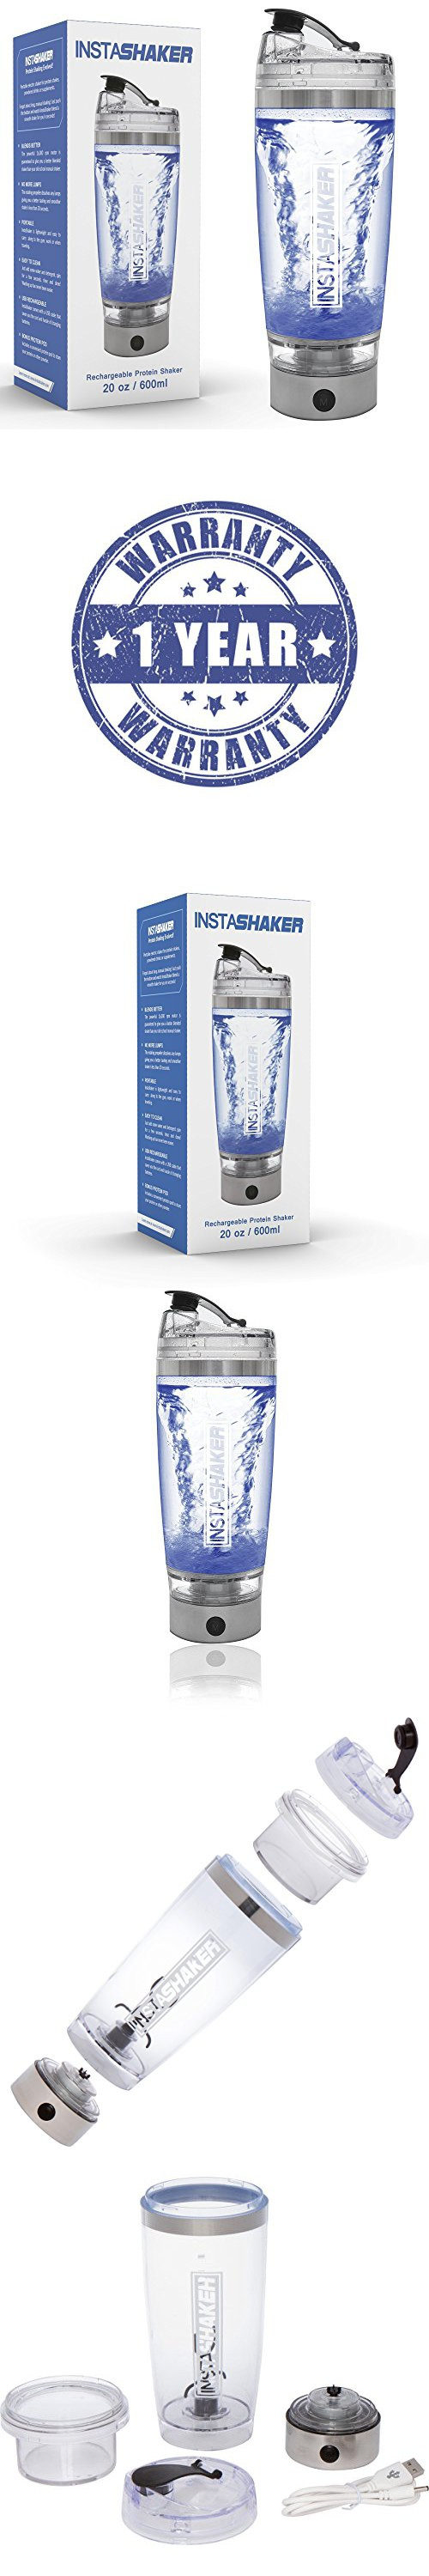 InstaShaker Protein Shaker Bottle - Electric Blender Bottle